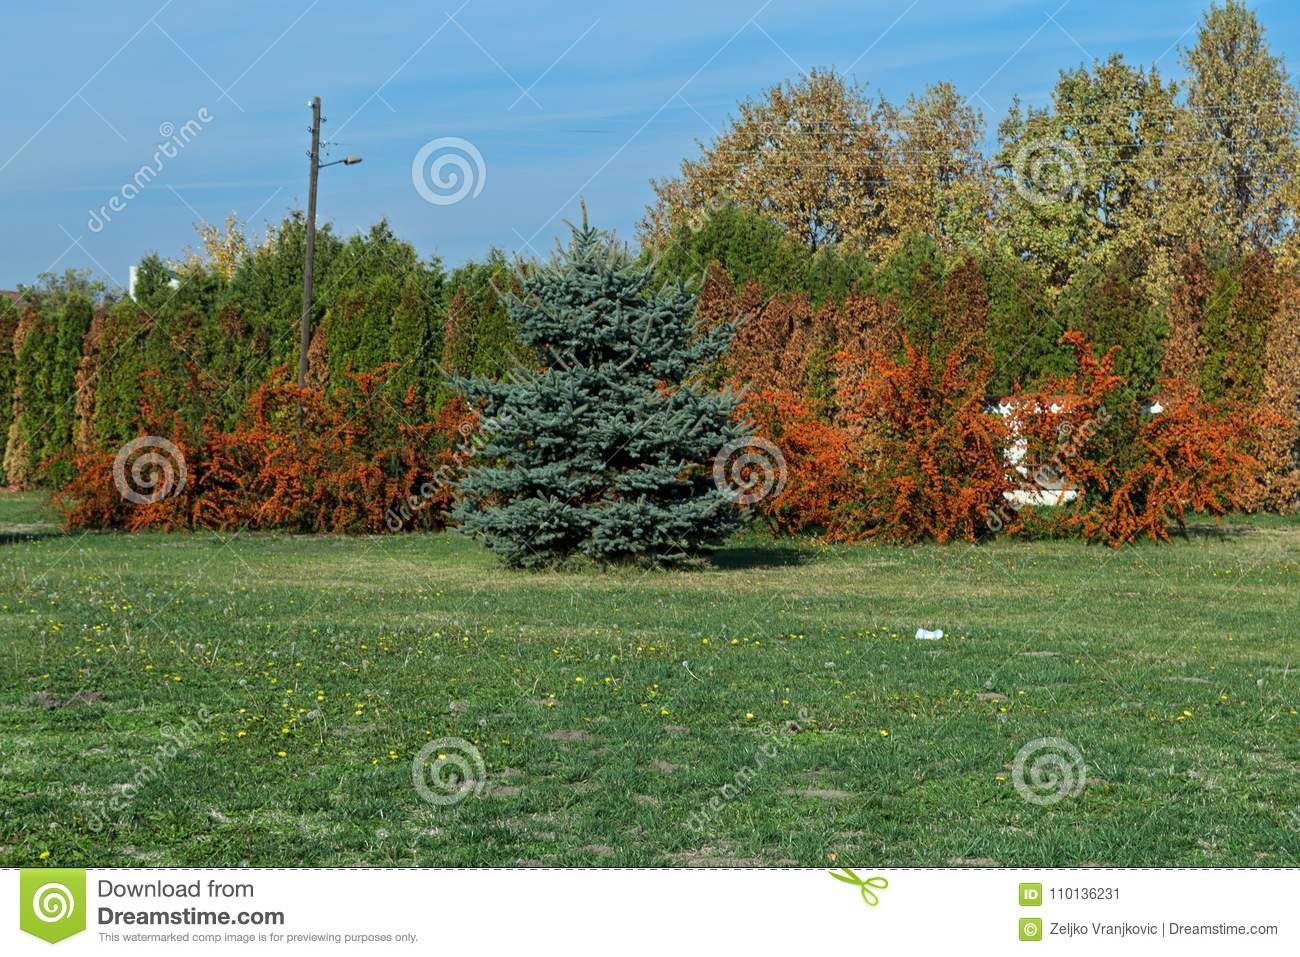 Several Sea Buckthorn trees with Christmas tree in front of them